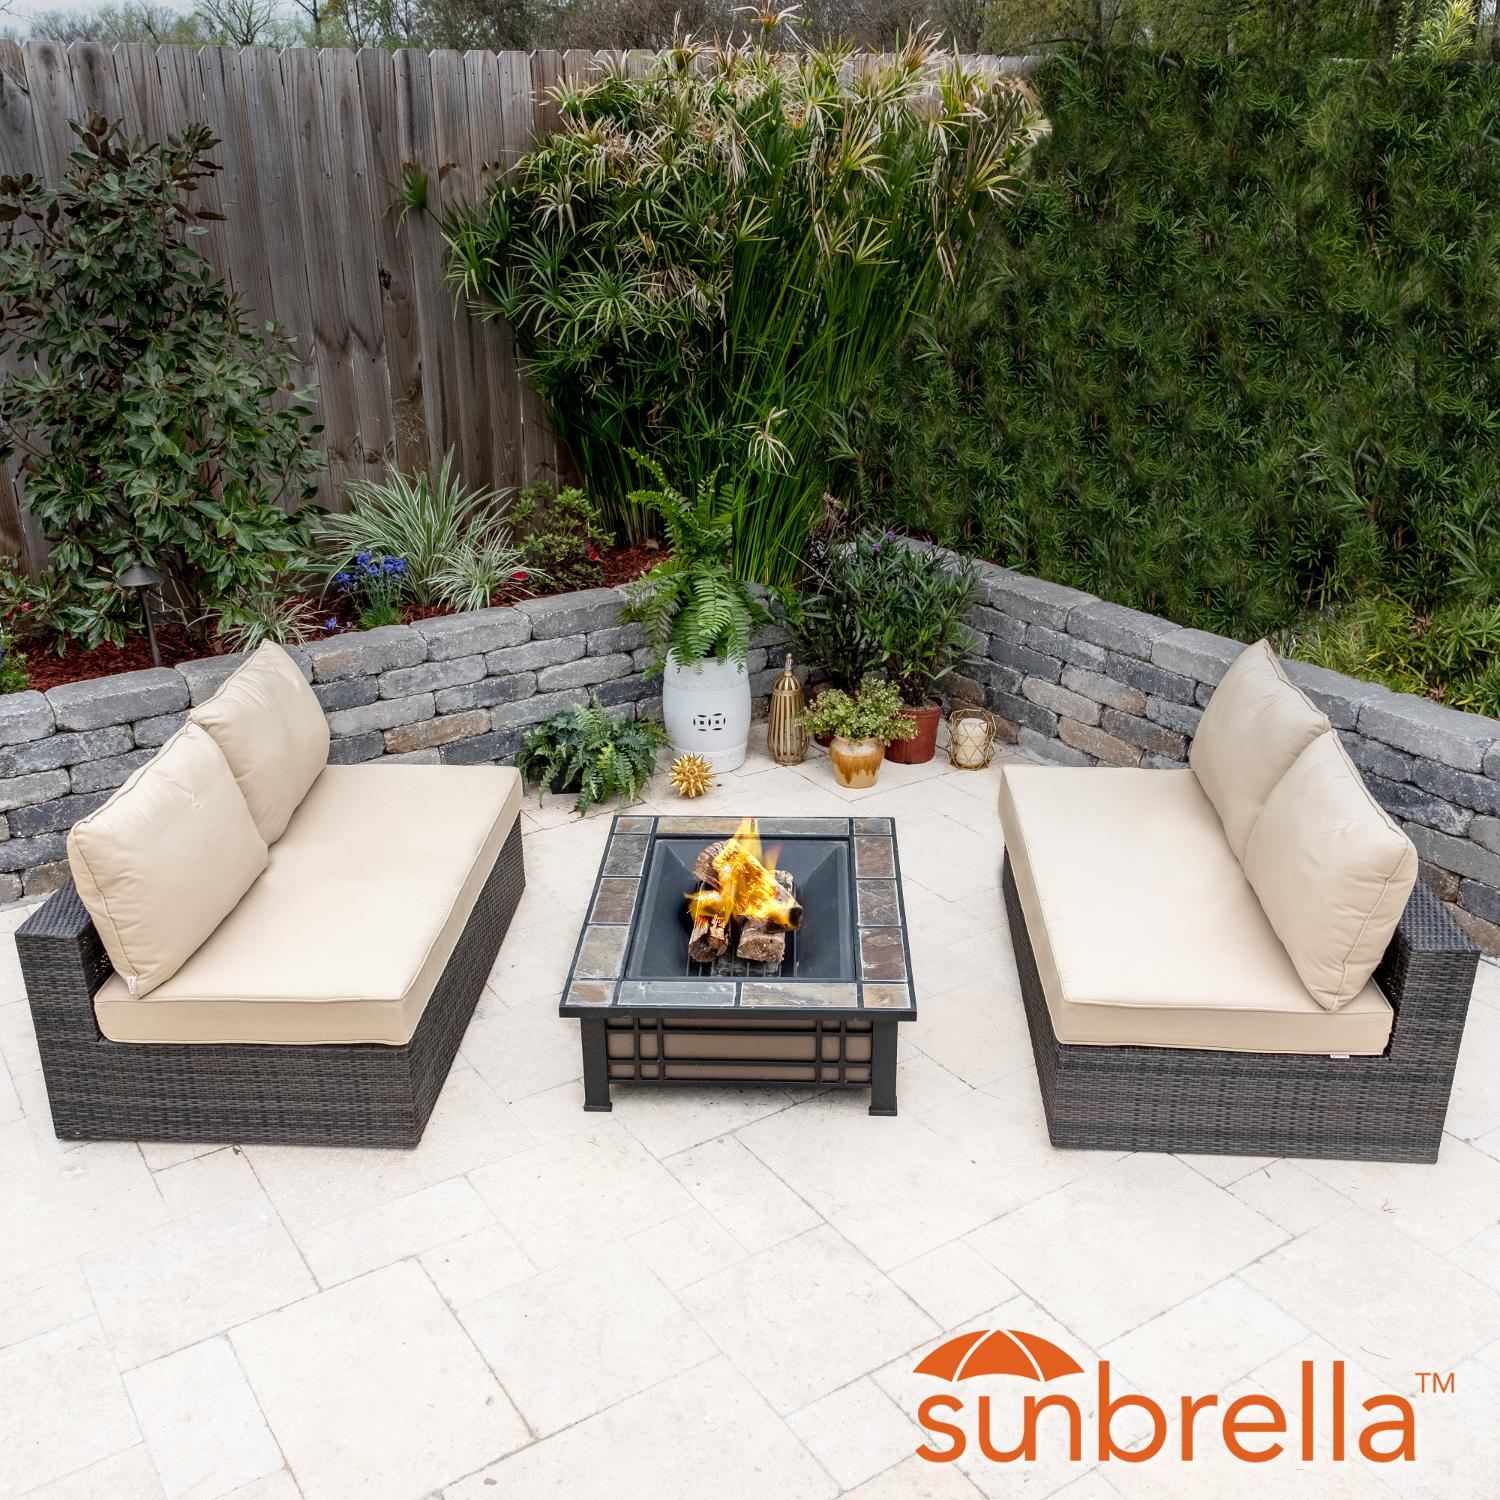 Lakeview Gentilly 3 Piece Wicker Patio Fire Pit Sectional Set W/ Sunbrella Canvas Antique Beige Cushions By